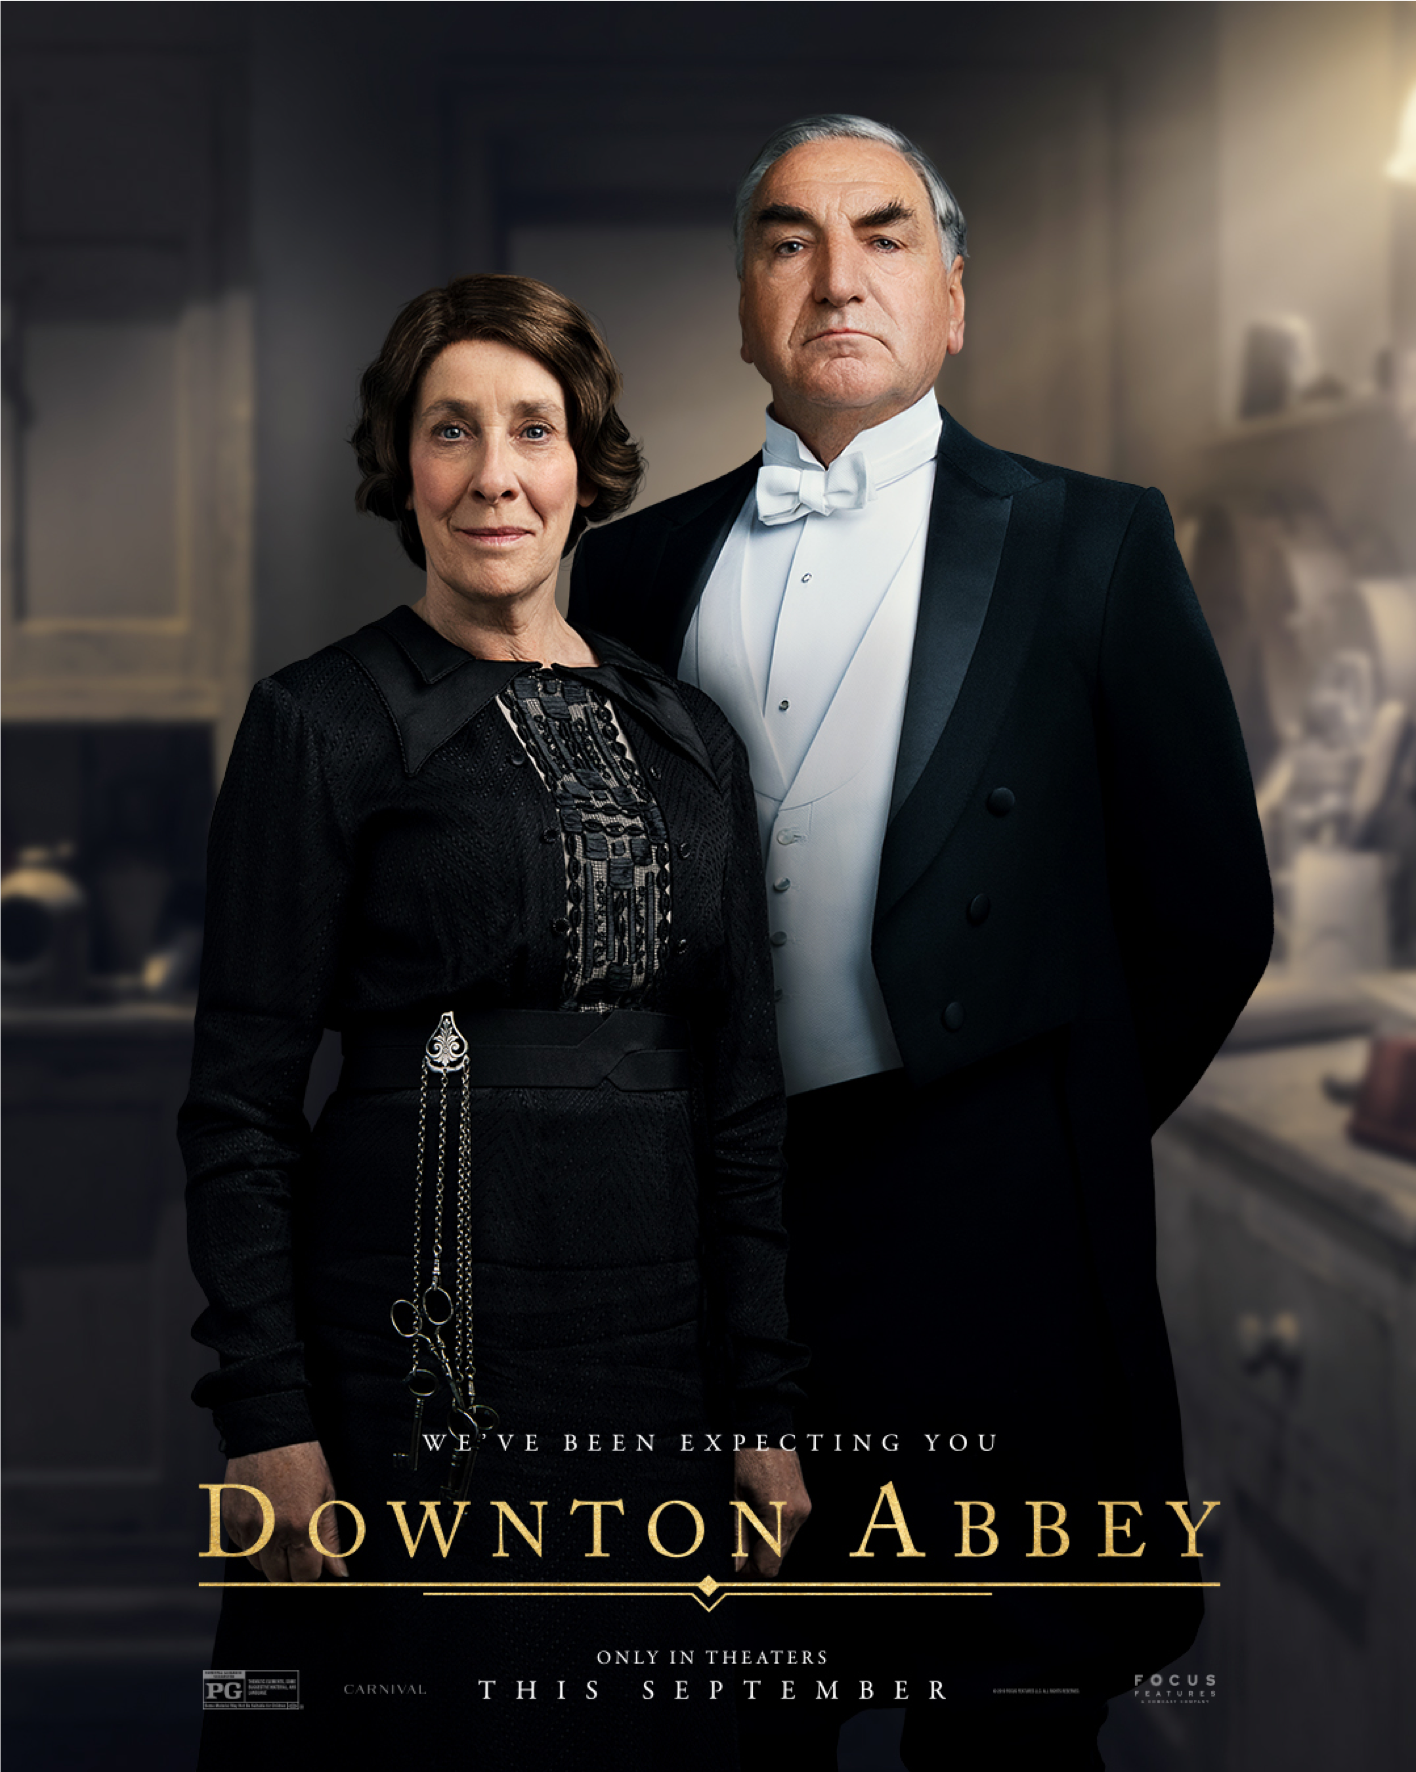 Only one week left until the premiere of the the Downton